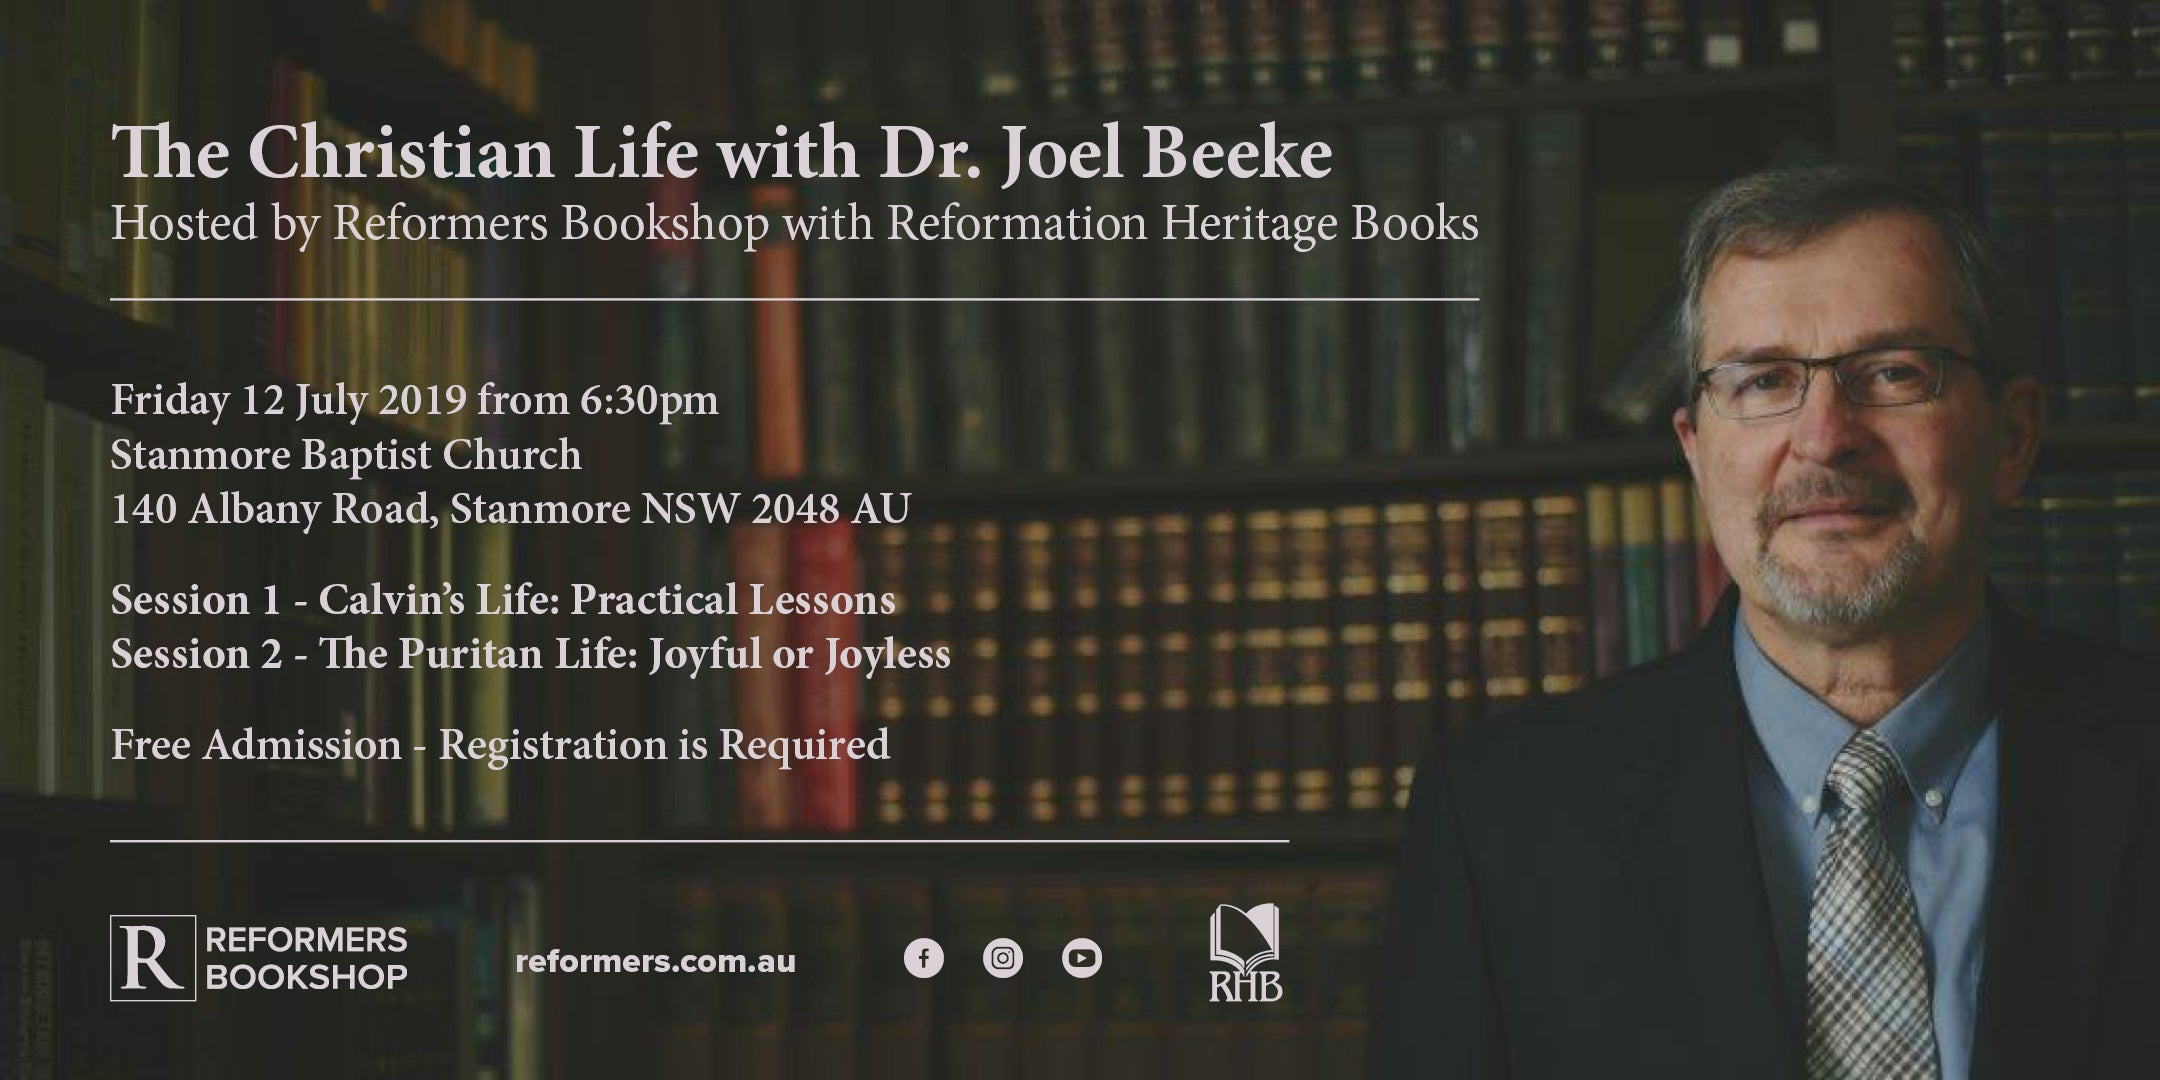 The Christian Life with Dr. Joel Beeke